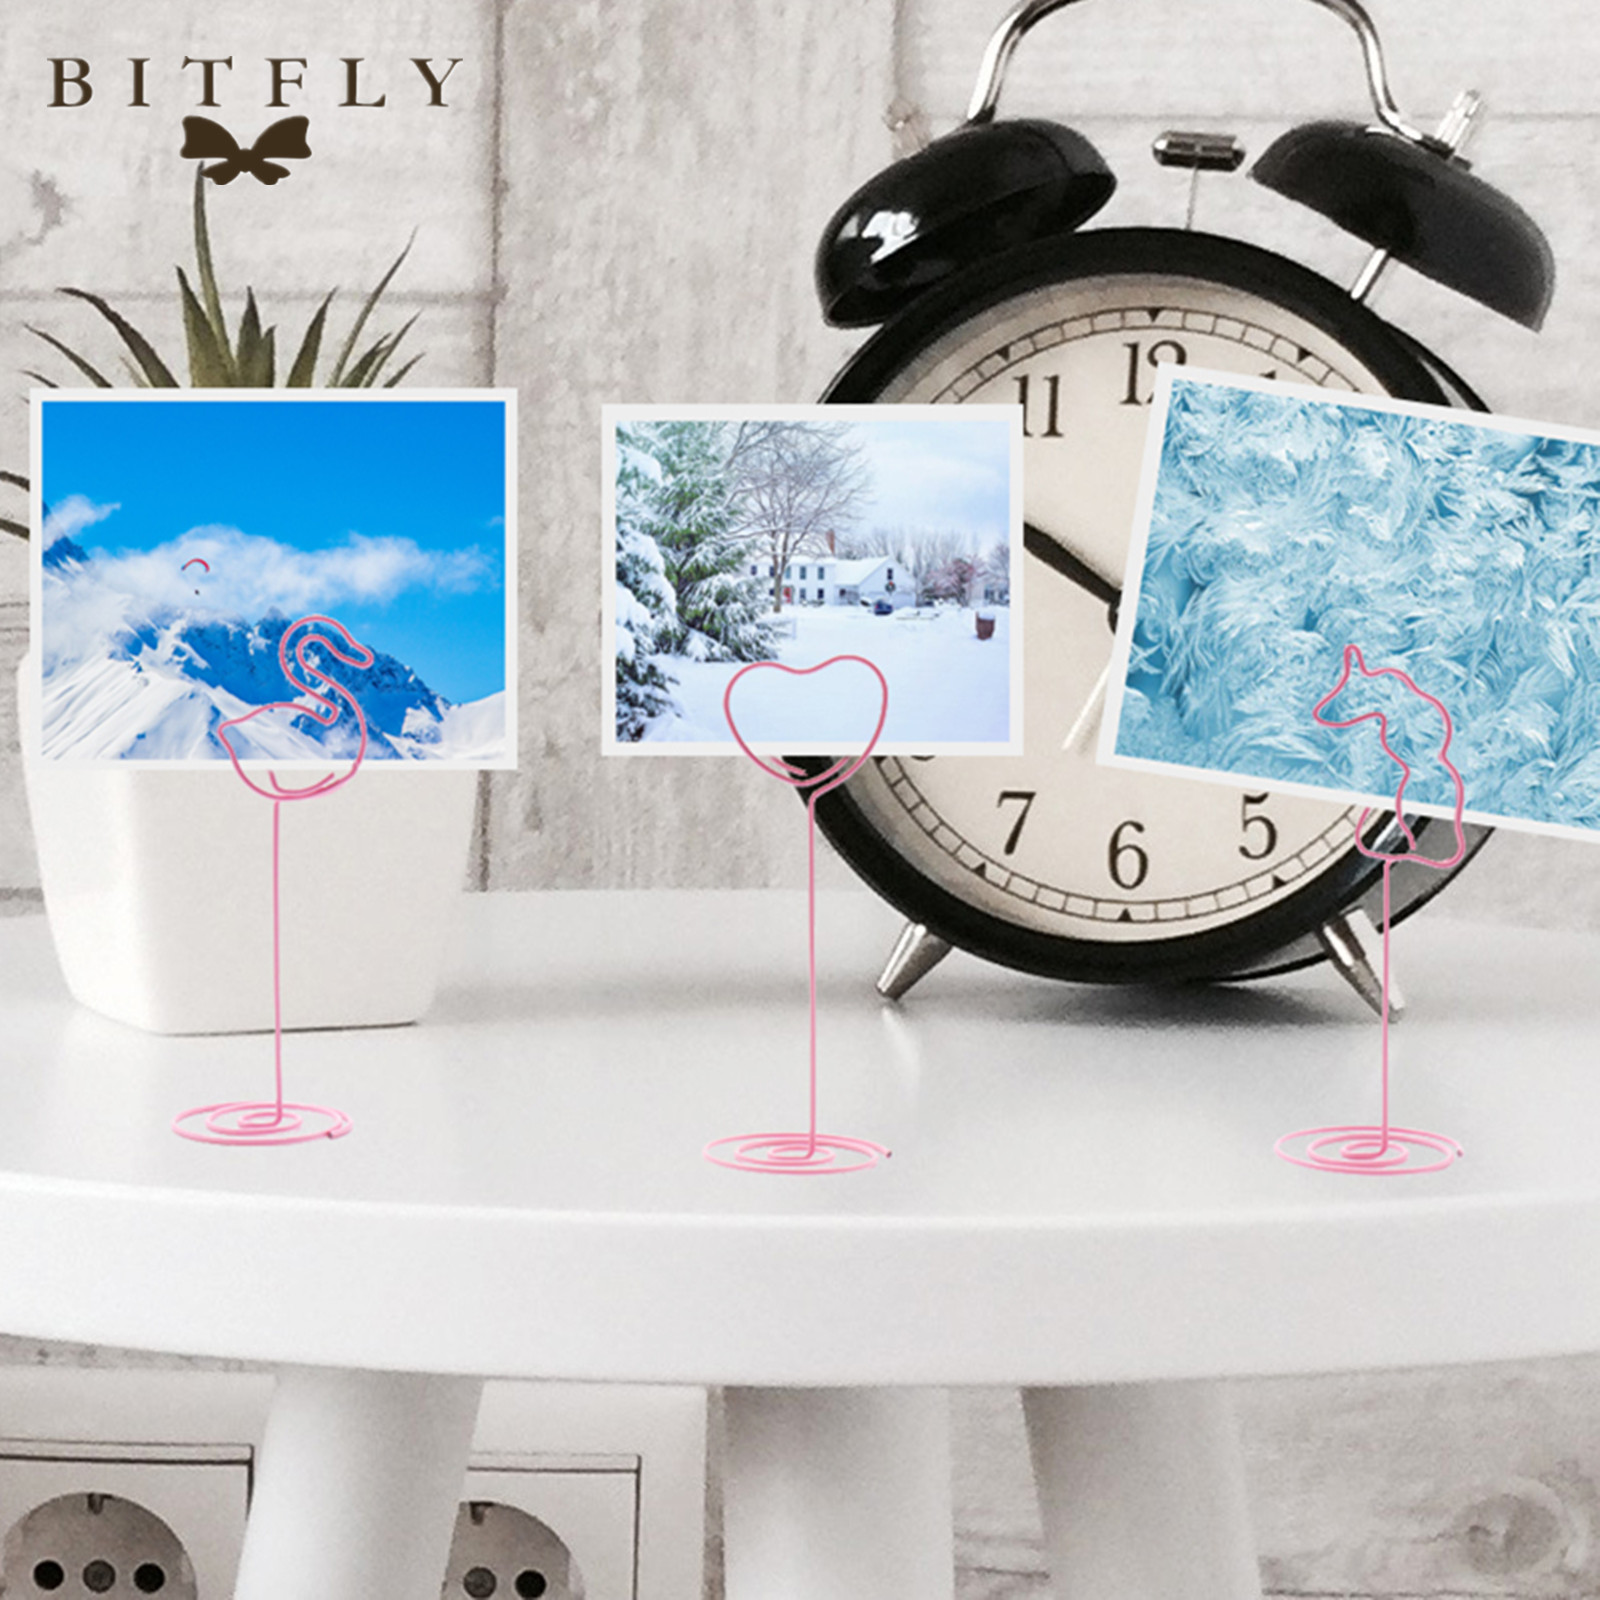 BIT.FLY Birthday Party Unicorn Table Photo Clips Romantic Wedding Place Card Holder Flamingo Desk Notes Party DIY Decorations